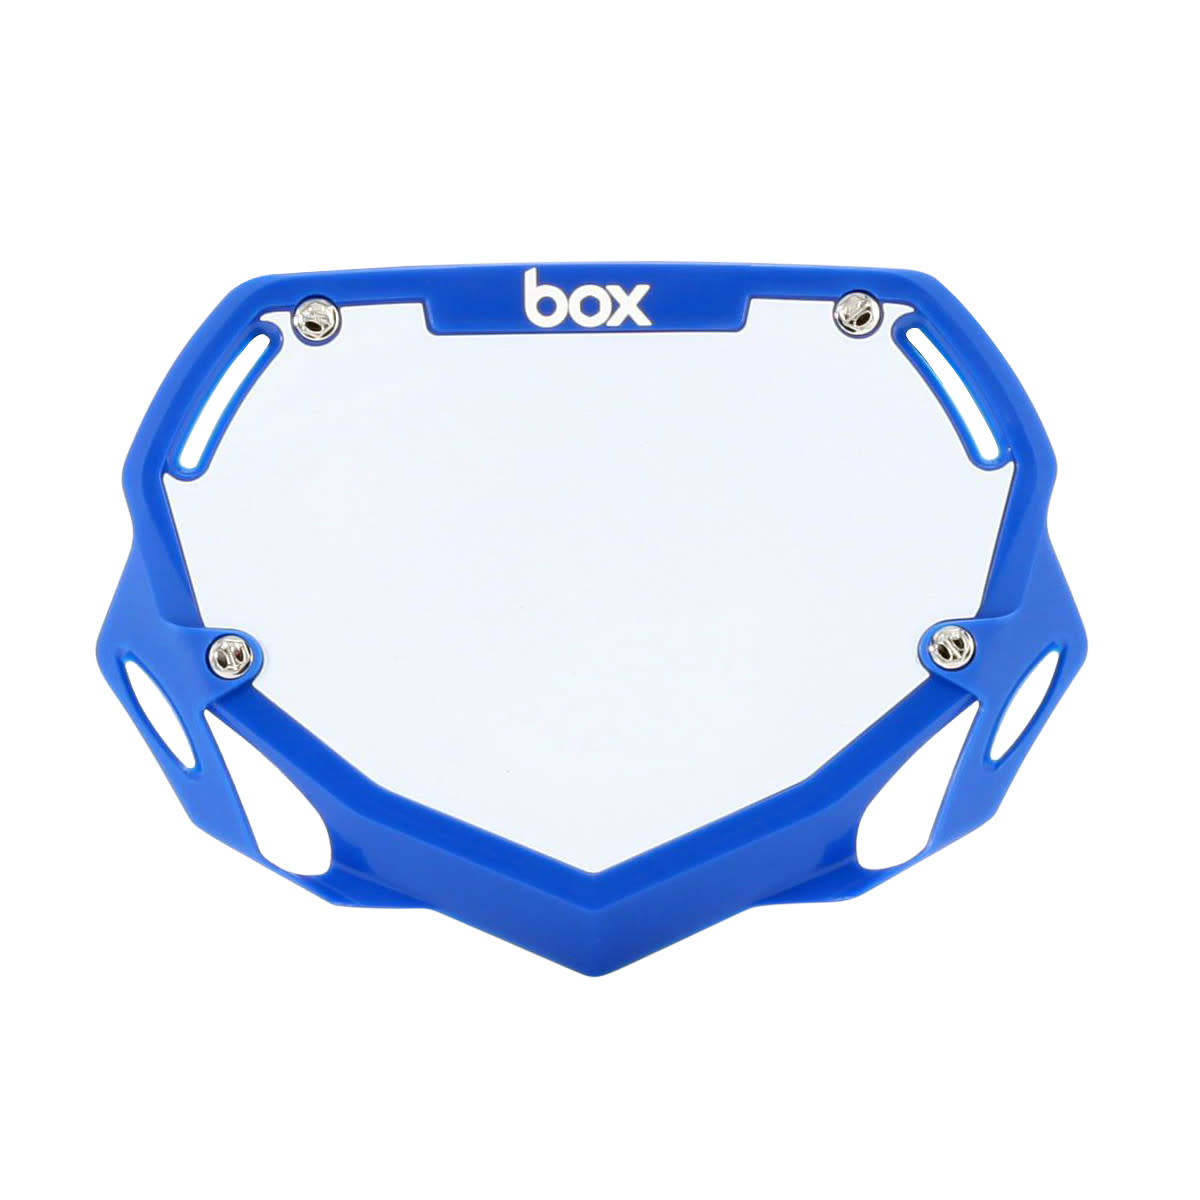 Box Components Box Phase 2 Mini Blue Number Plate